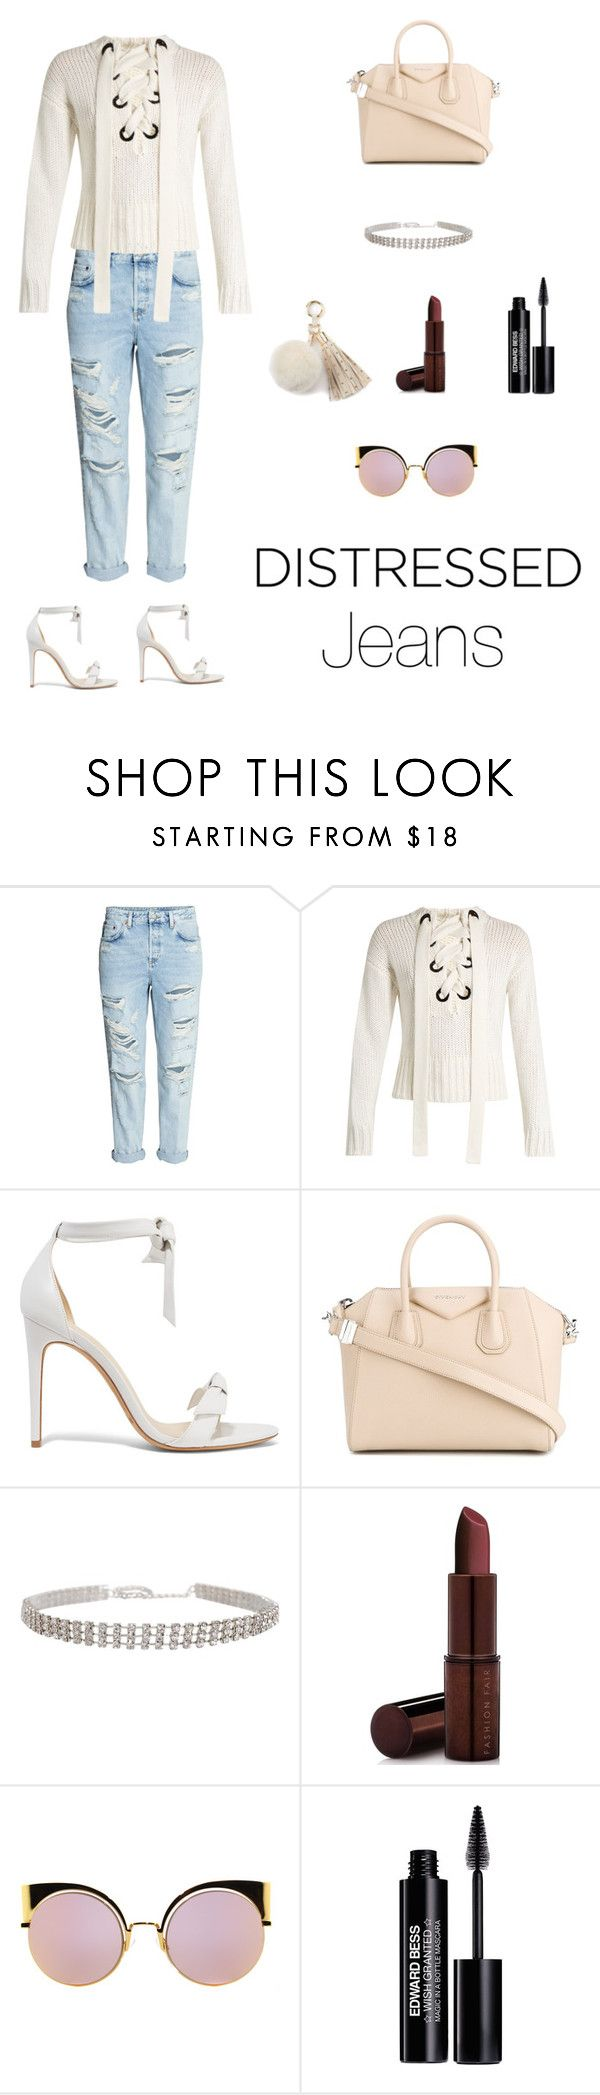 """#distressjeans"" by style4ever2 ❤ liked on Polyvore featuring Joseph, Alexandre Birman, Givenchy, Fashion Fair, Fendi, Edward Bess and Juicy Couture"